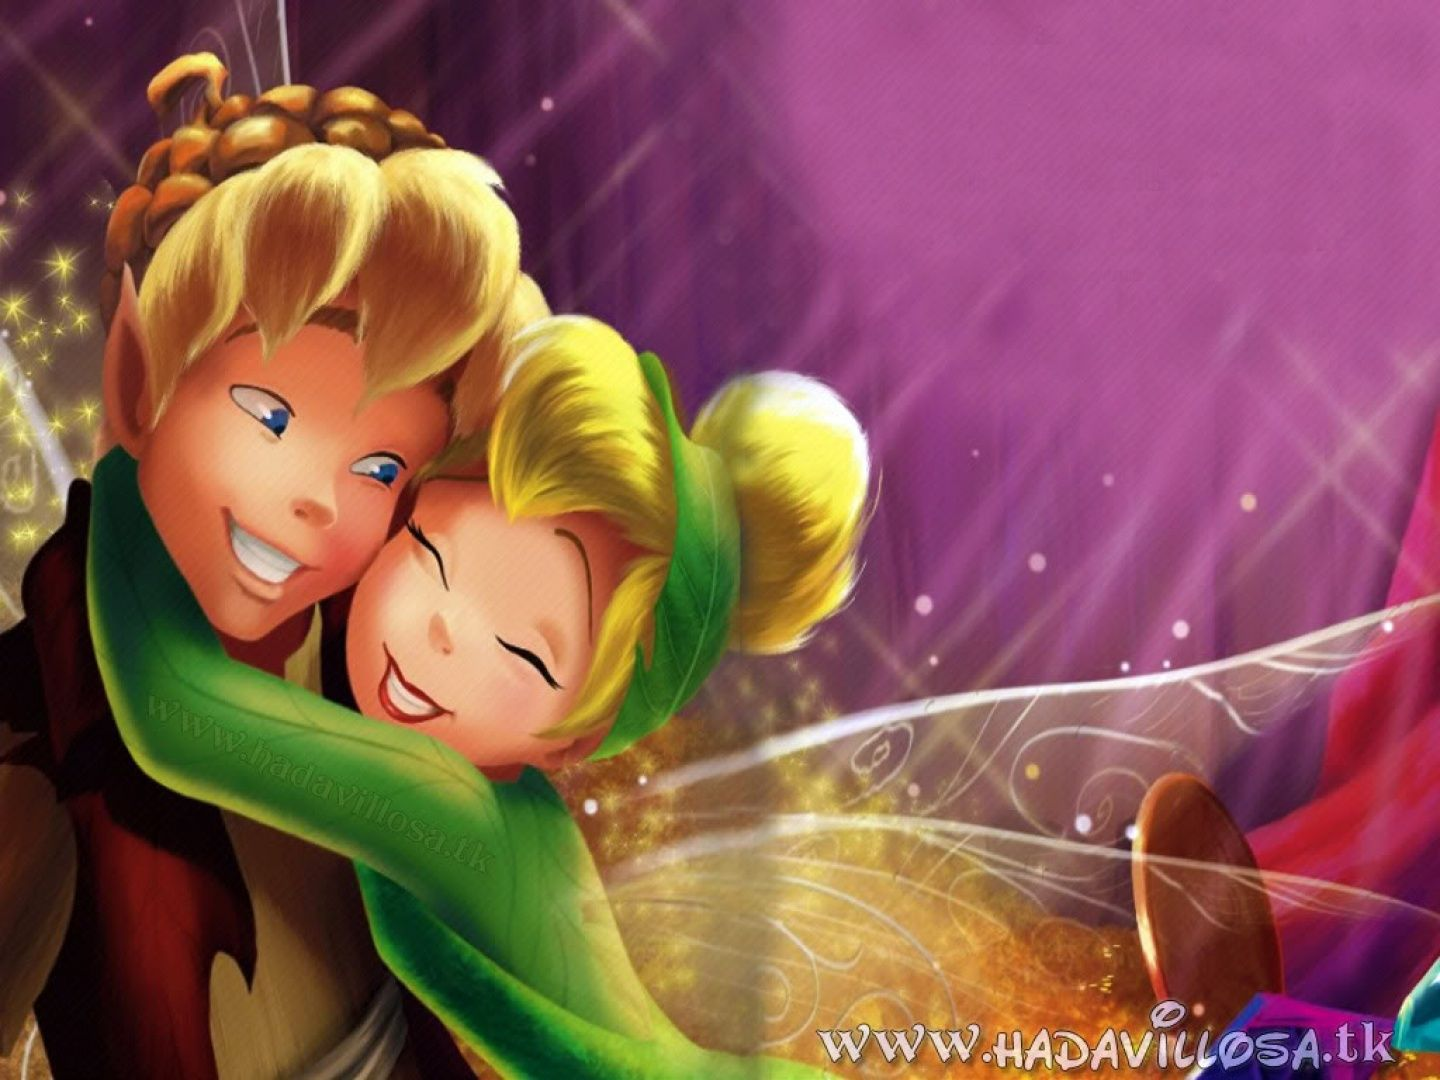 Tinkerbell - Bing Images